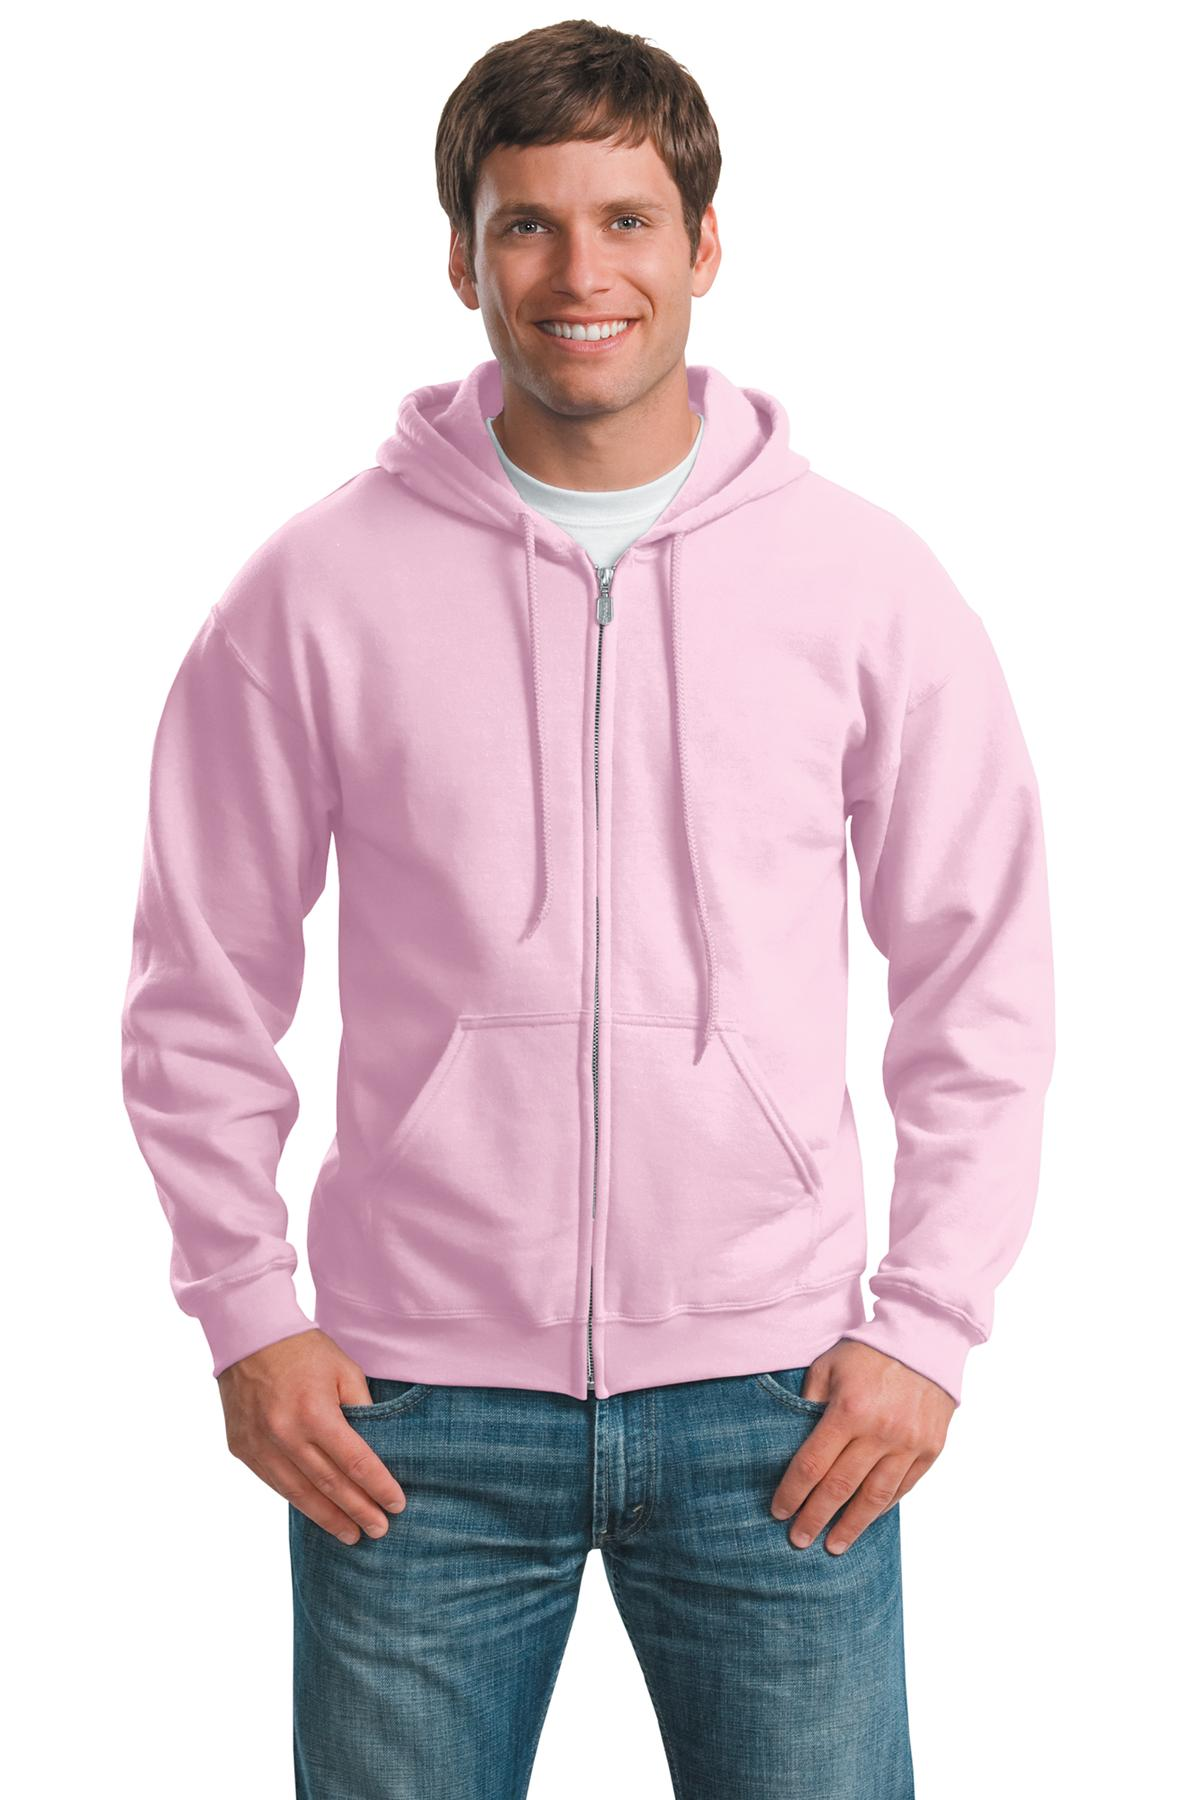 Gildan ®  - Heavy Blend™ Full-Zip Hooded Sweatshirt. 18600 - Light Pink